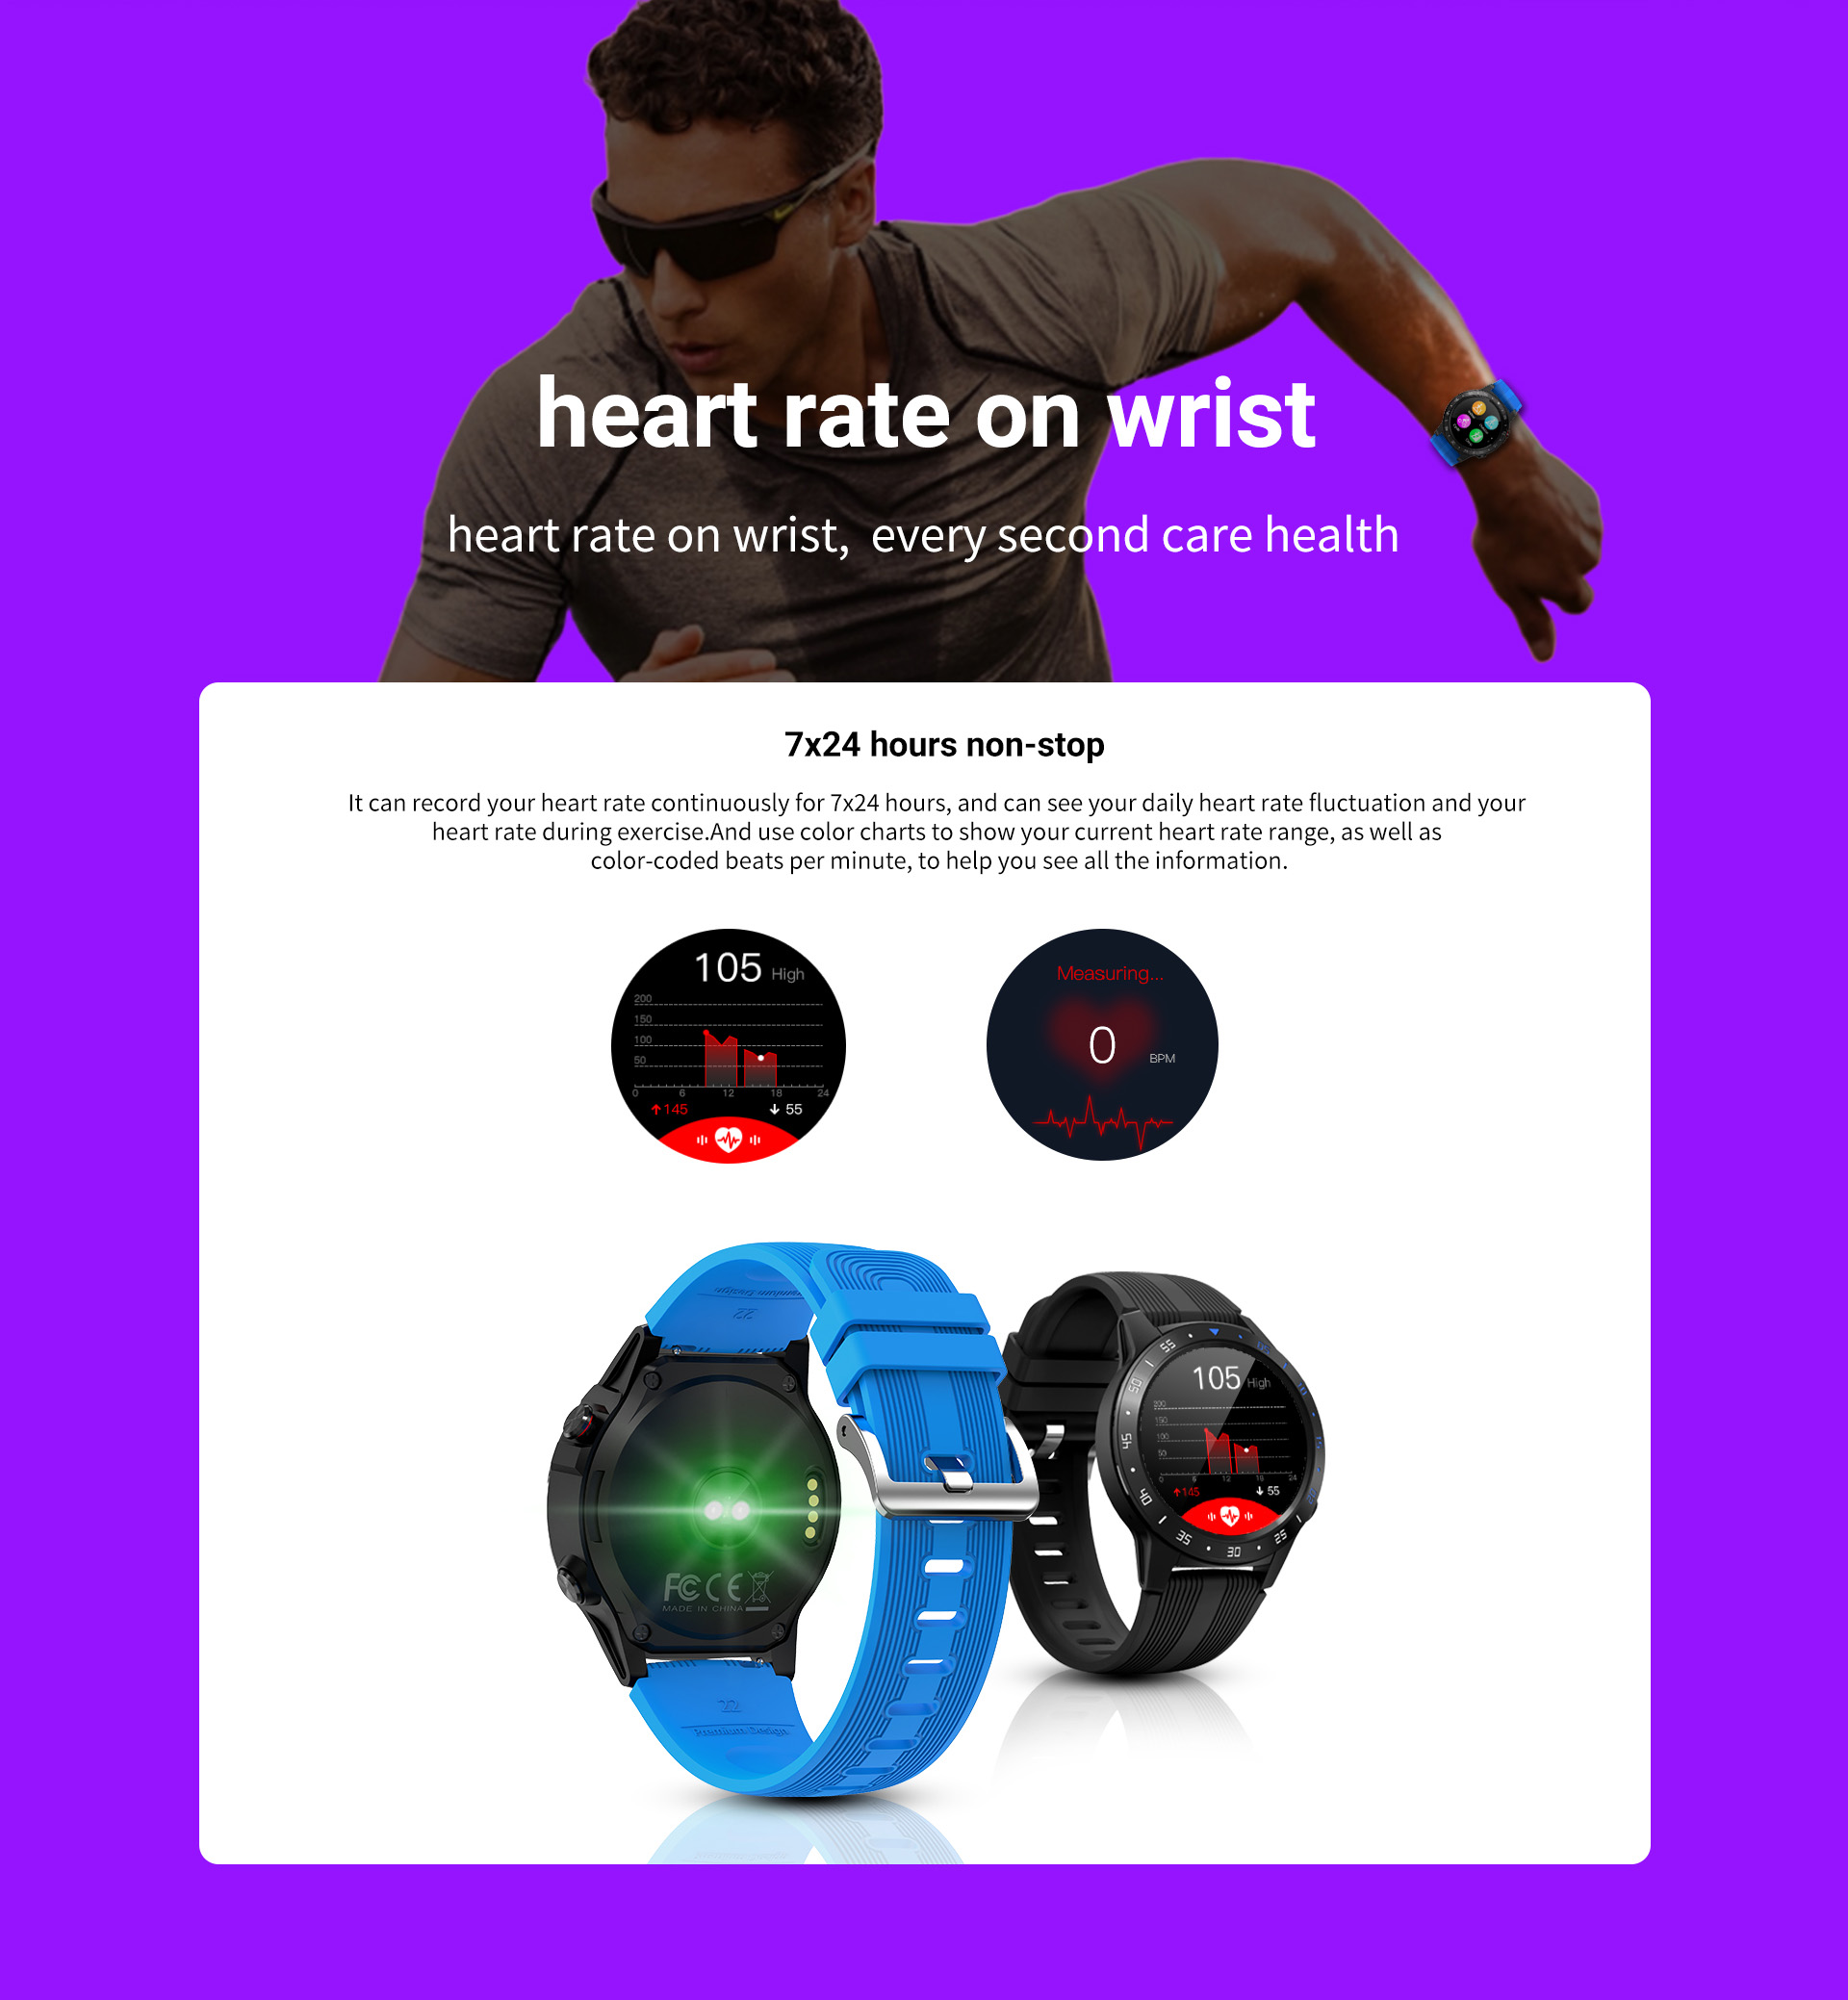 Hce6f9c0eafc349f7b4fcf8f7a0b84507X GPS Smartwatch Men With SIM Card Fitness Compass Barometer Altitude M5 Mi Smart Watch Men Women 2021 for Android Xiaomi